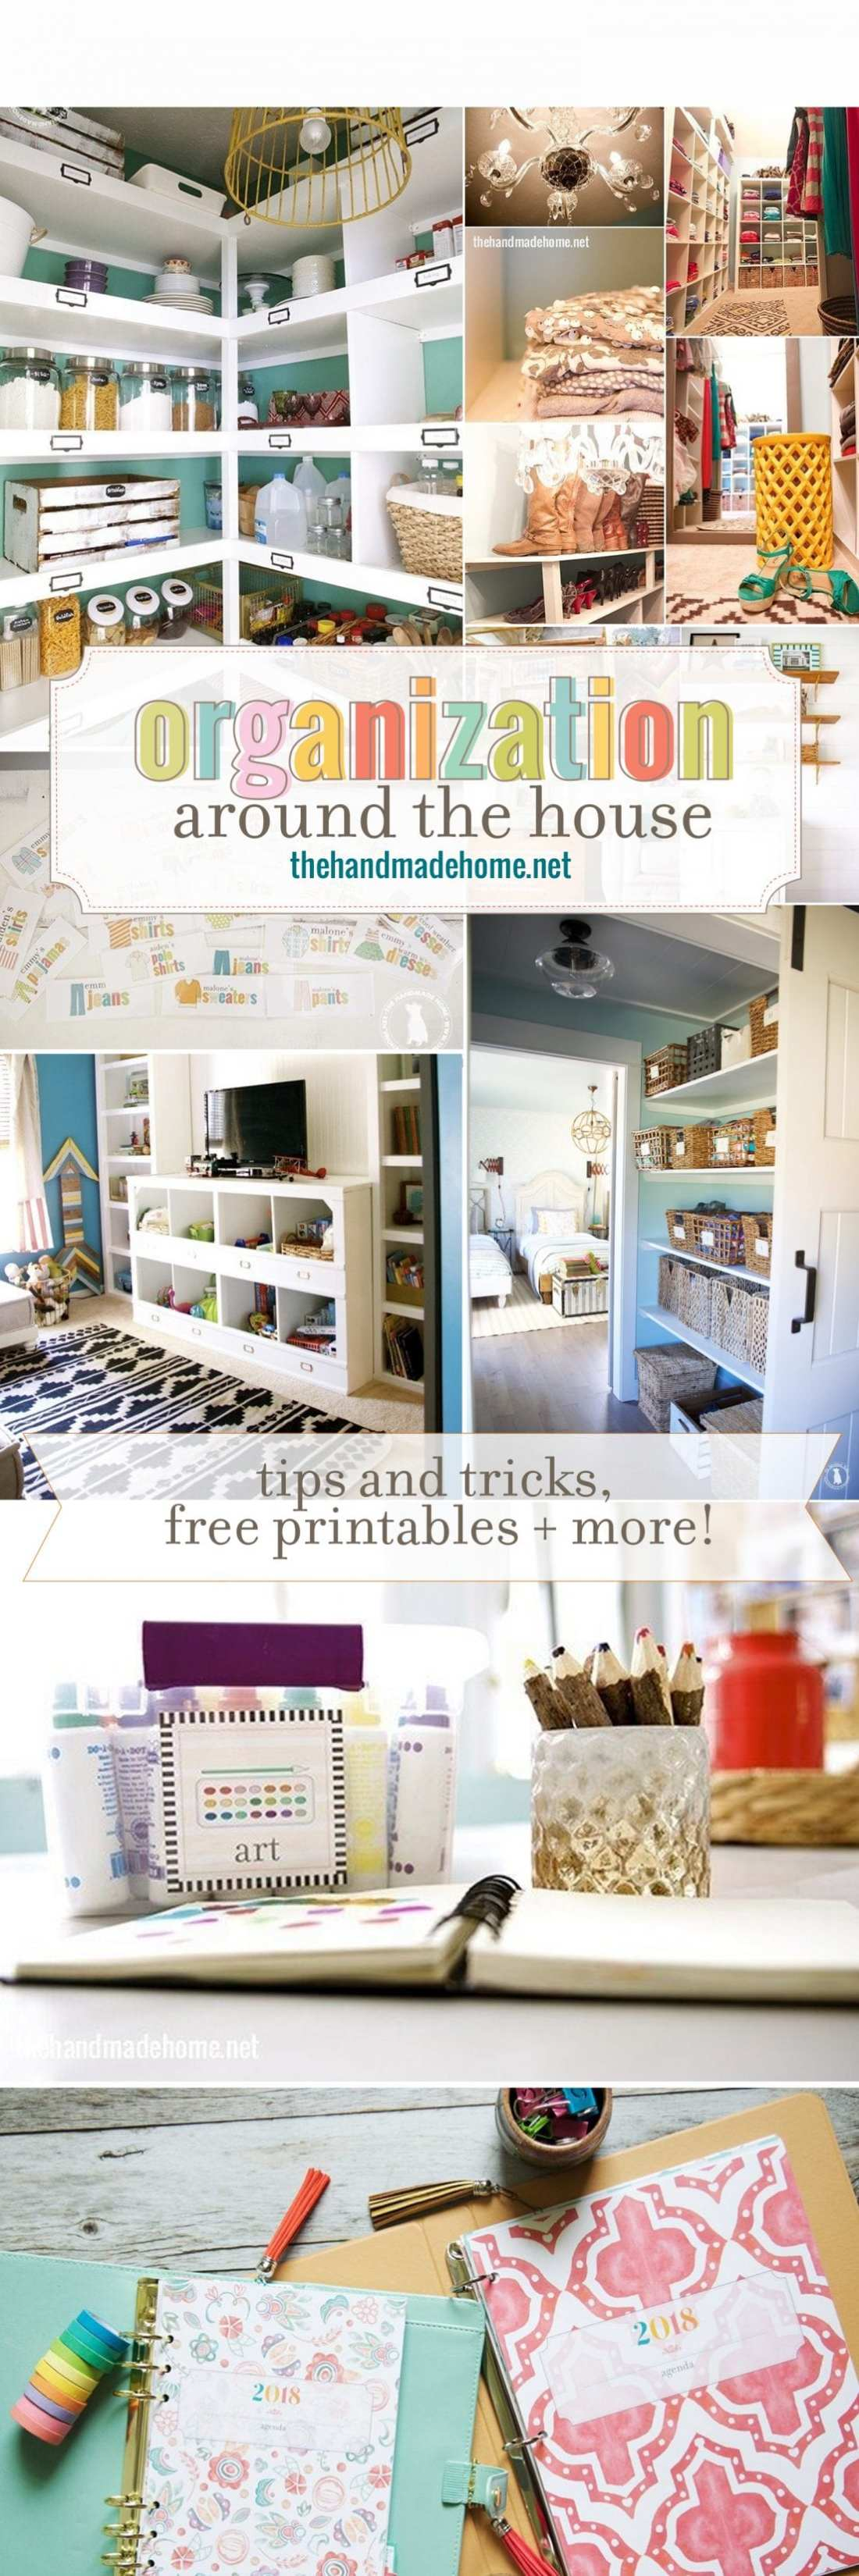 organization around the house - tips and tricks